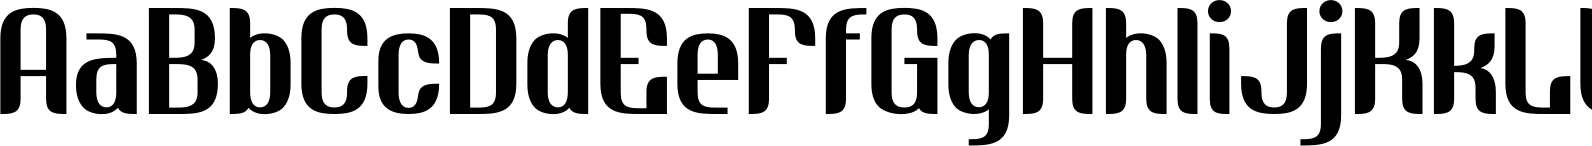 Nudely Regular One Font